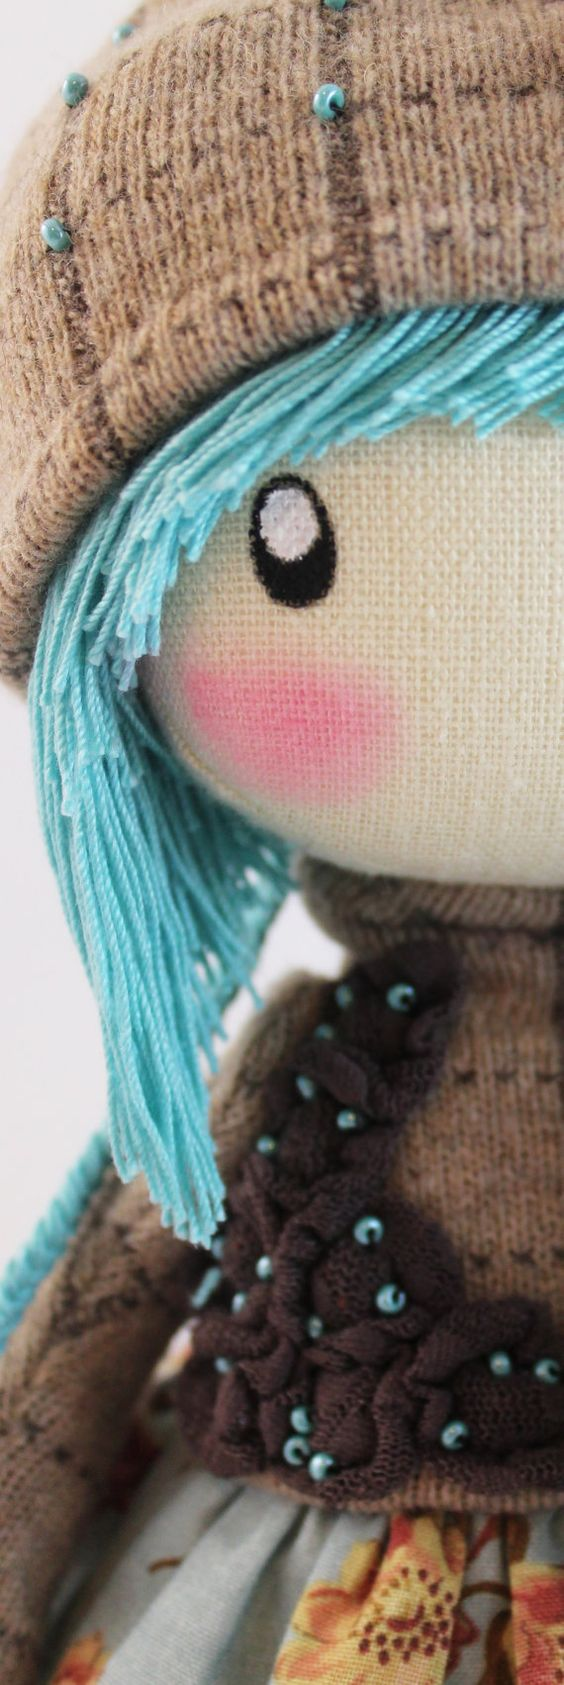 Doll Zooey brown and turquoise rag doll cloth by DollsLittleAngels